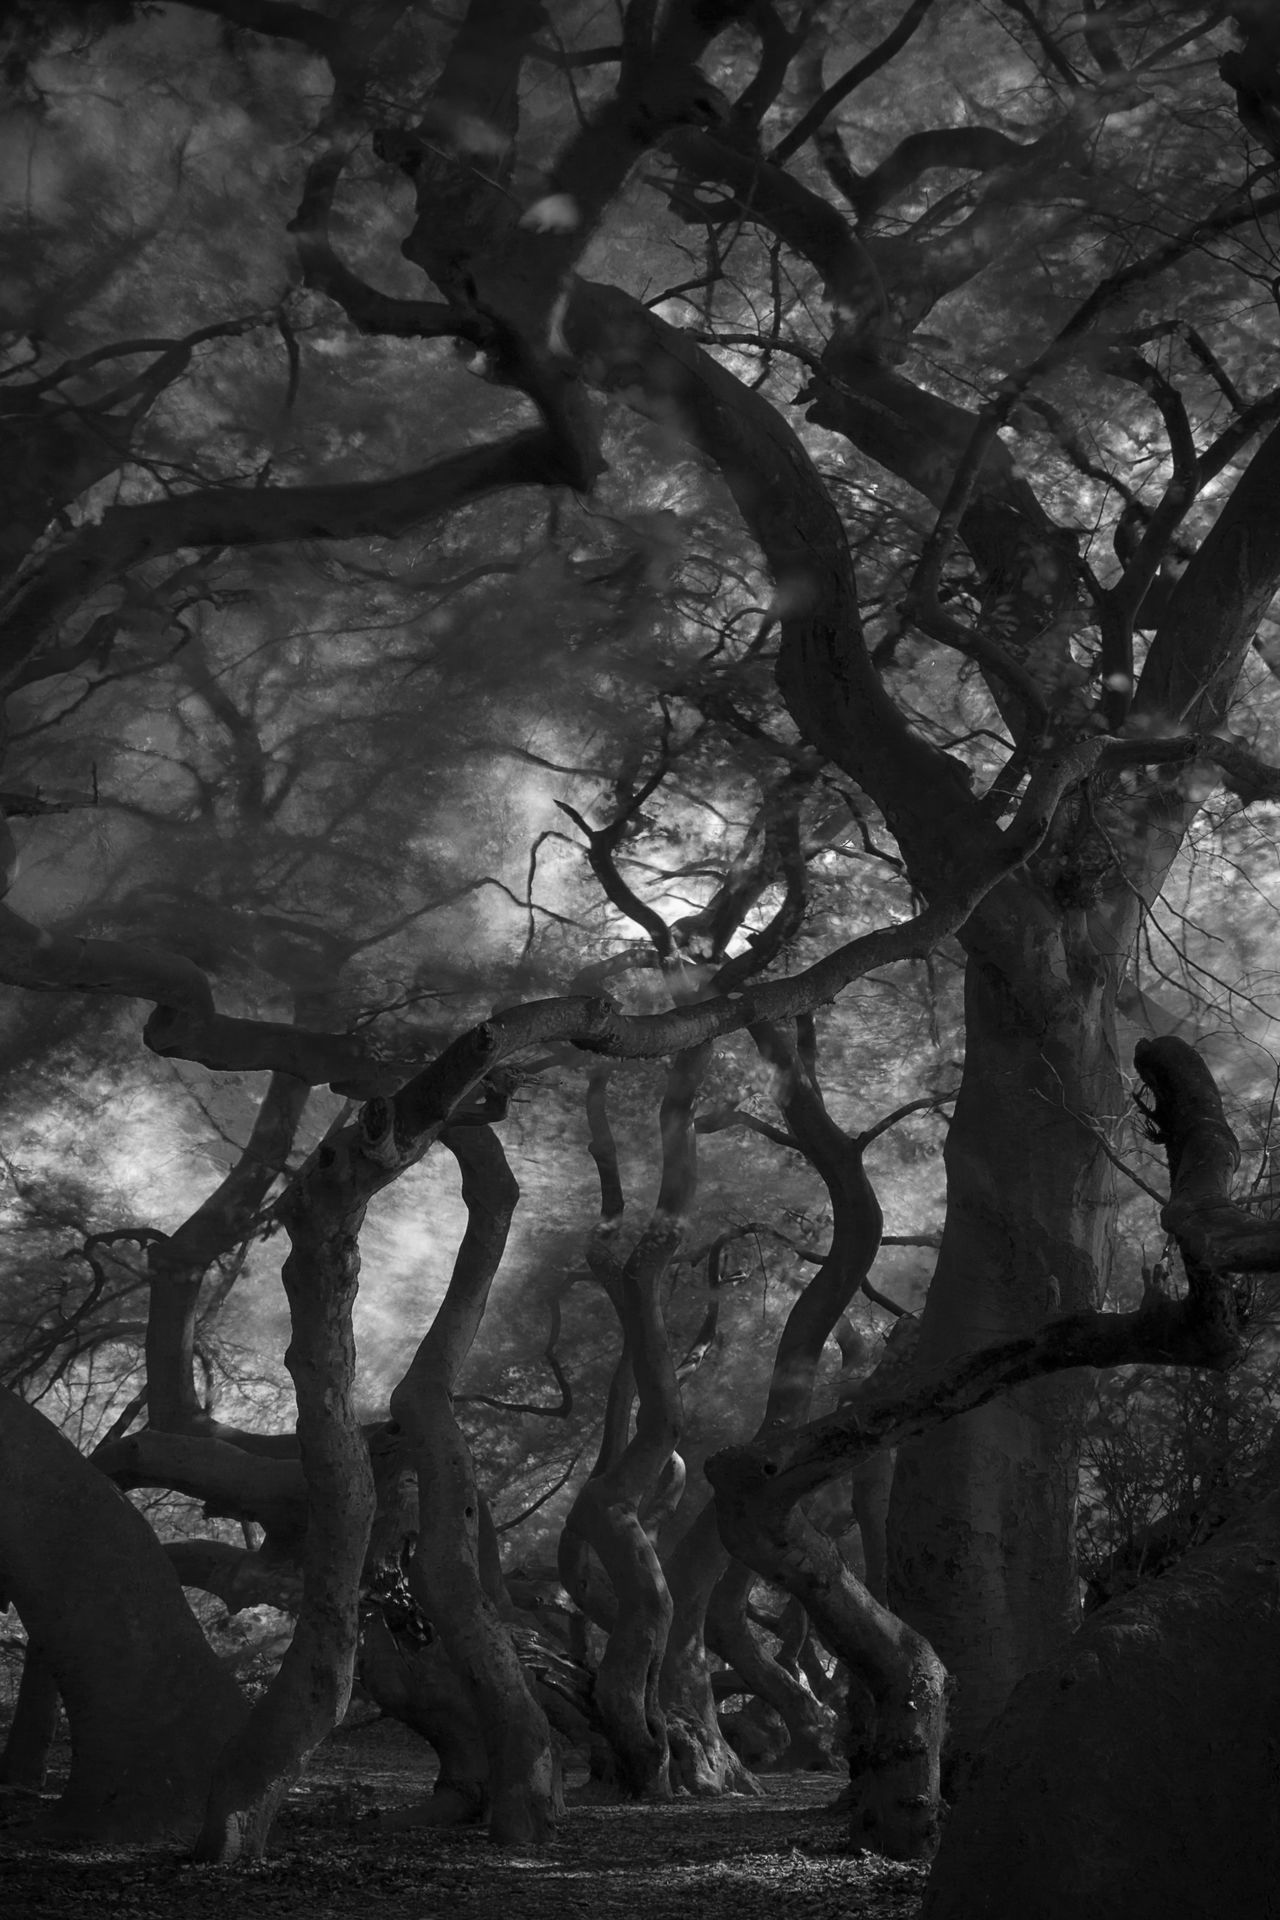 Mysteriousforest Mystic View Mysterious Mystery Forest Mysterious Place Mysterious Tree Black & White Black And White Blackandwhite Photography Black And White Photography Fagus Sylvatica Var. Tortuosa Fagus Sylvatica My Favorite Place Monochrome Photography From My Point Of View Eyeem Market EyeEm Gallery capturing motion Welcome To Black Long Goodbye